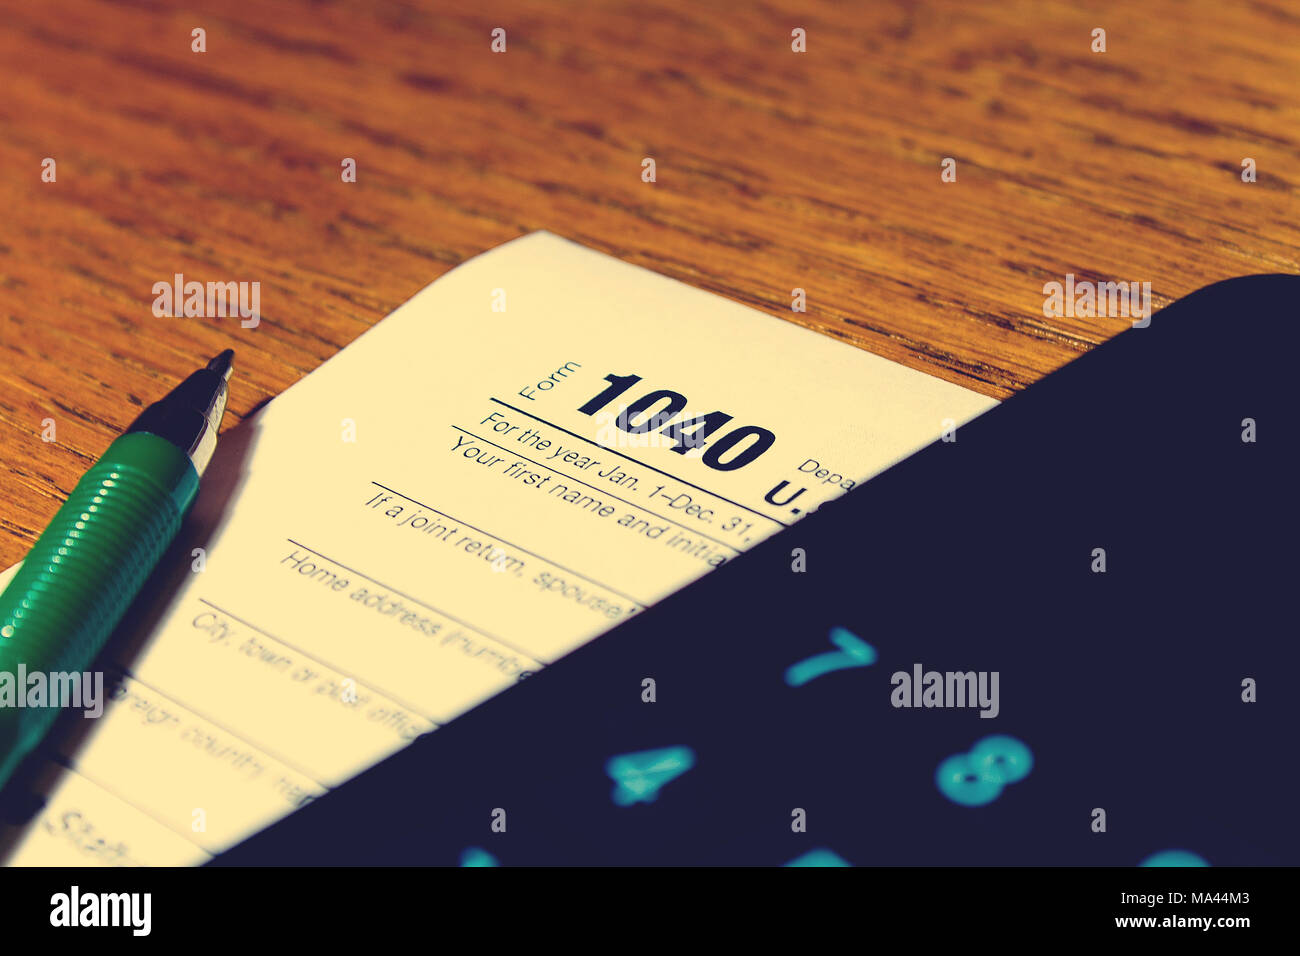 form 1040 due date  Due Date Calculator Stock Photos & Due Date Calculator Stock ...